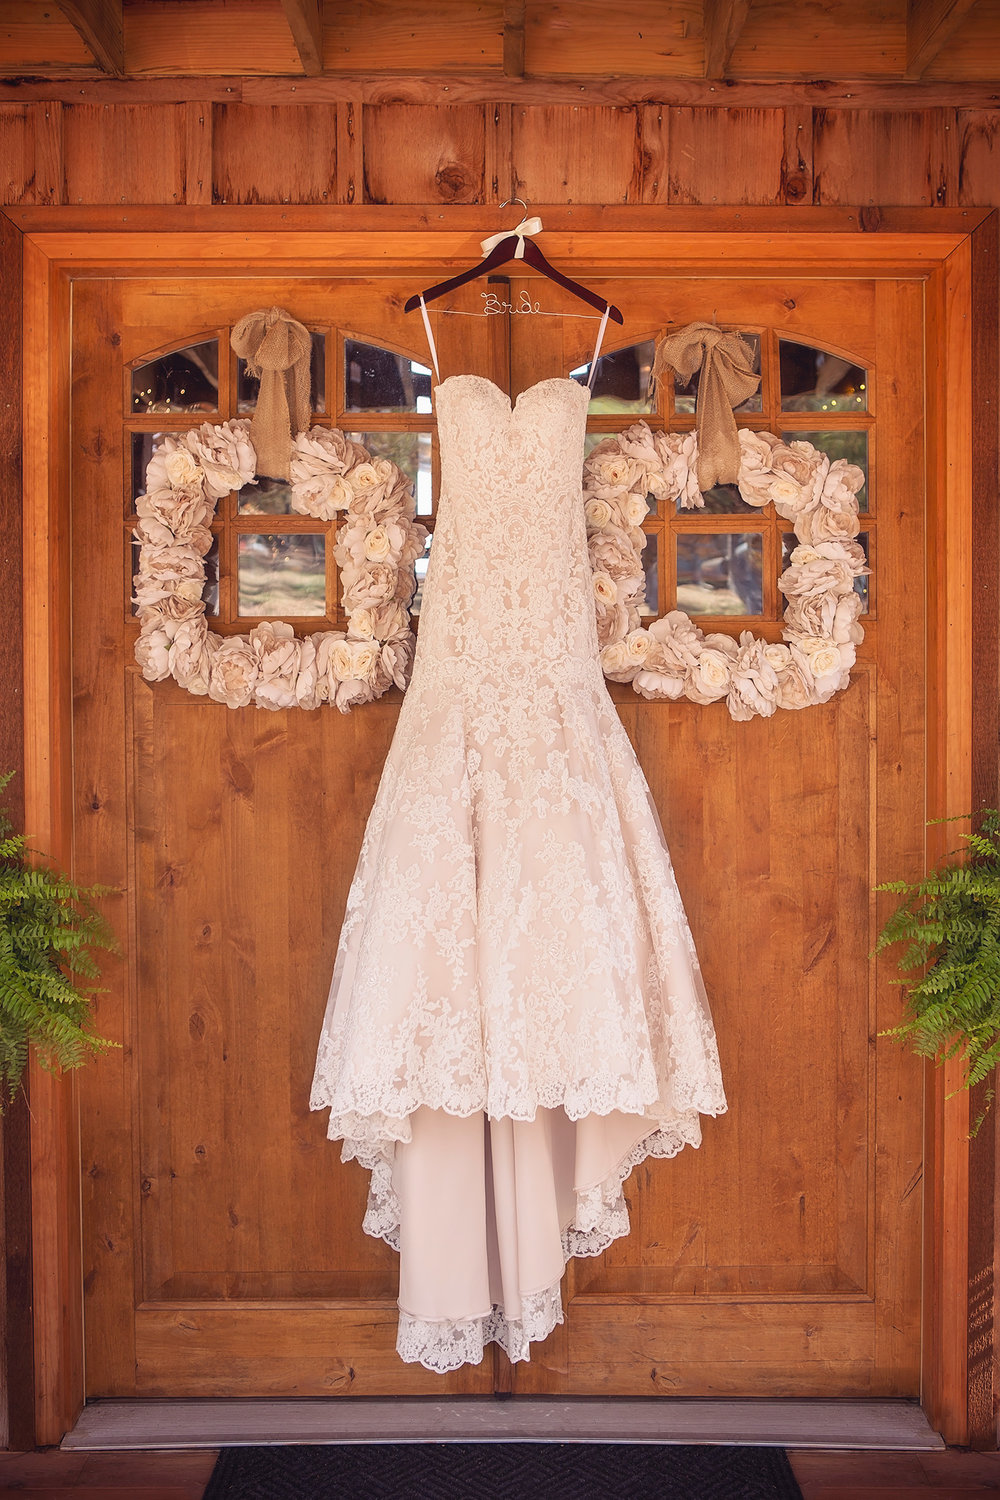 Bride's dress hangs in the doorway of the Weathered Wisdom Barn wedding venue in Buffalo, Missouri